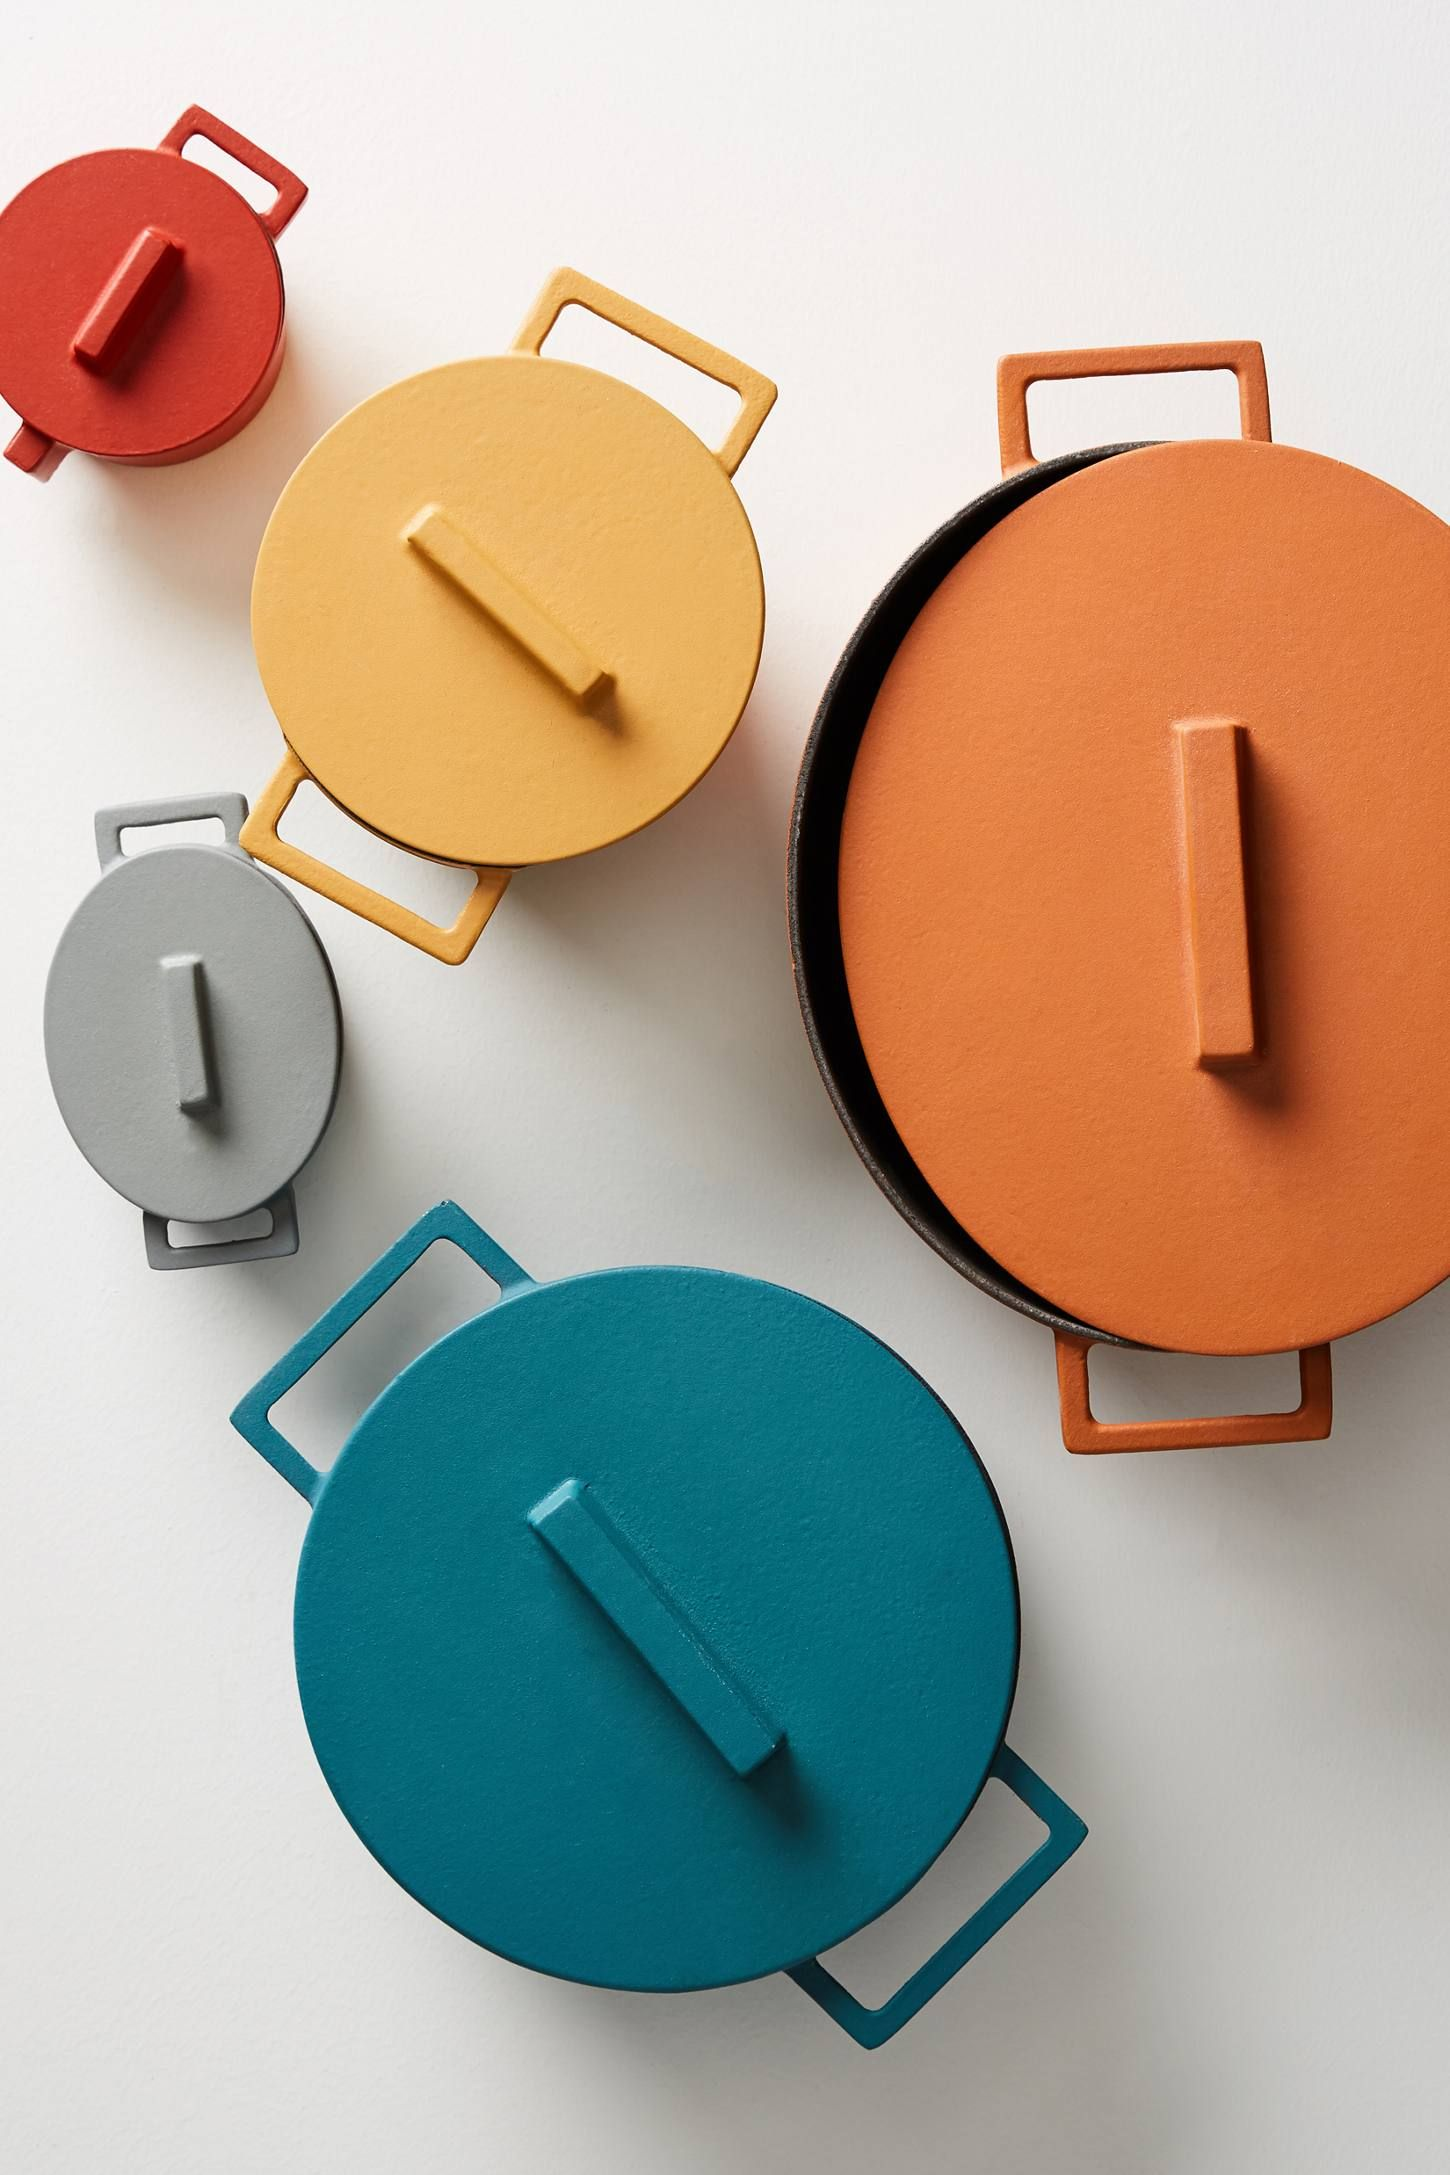 Colorful Kitchen Supplies: Shop The Sambonet Terra.Cotto Sauce Pot With Lid And More